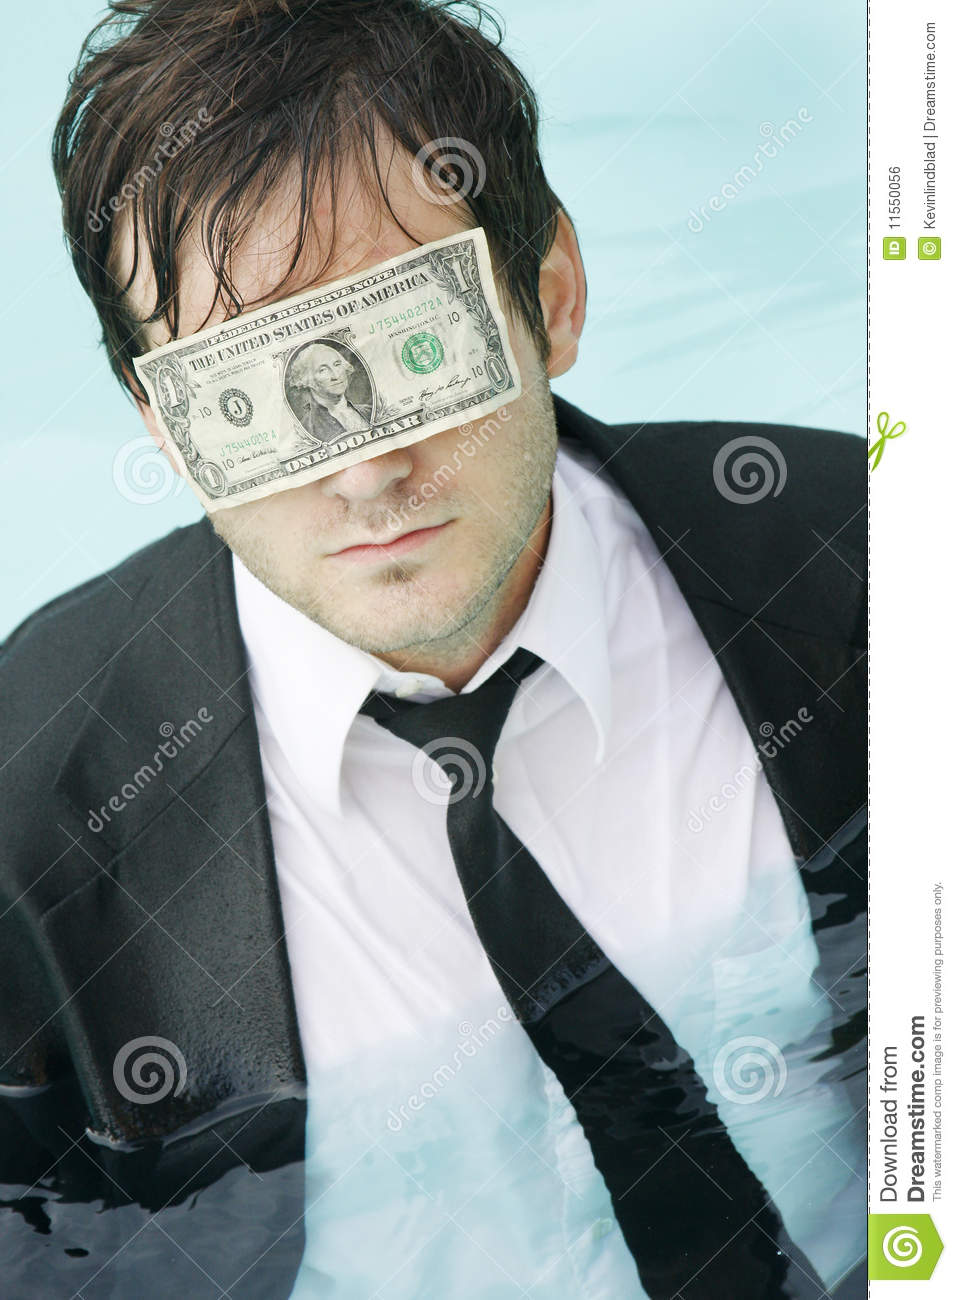 blinded by money Photo about businessman blinded with money on the dark image of manager, adult, industrial - 22156428.